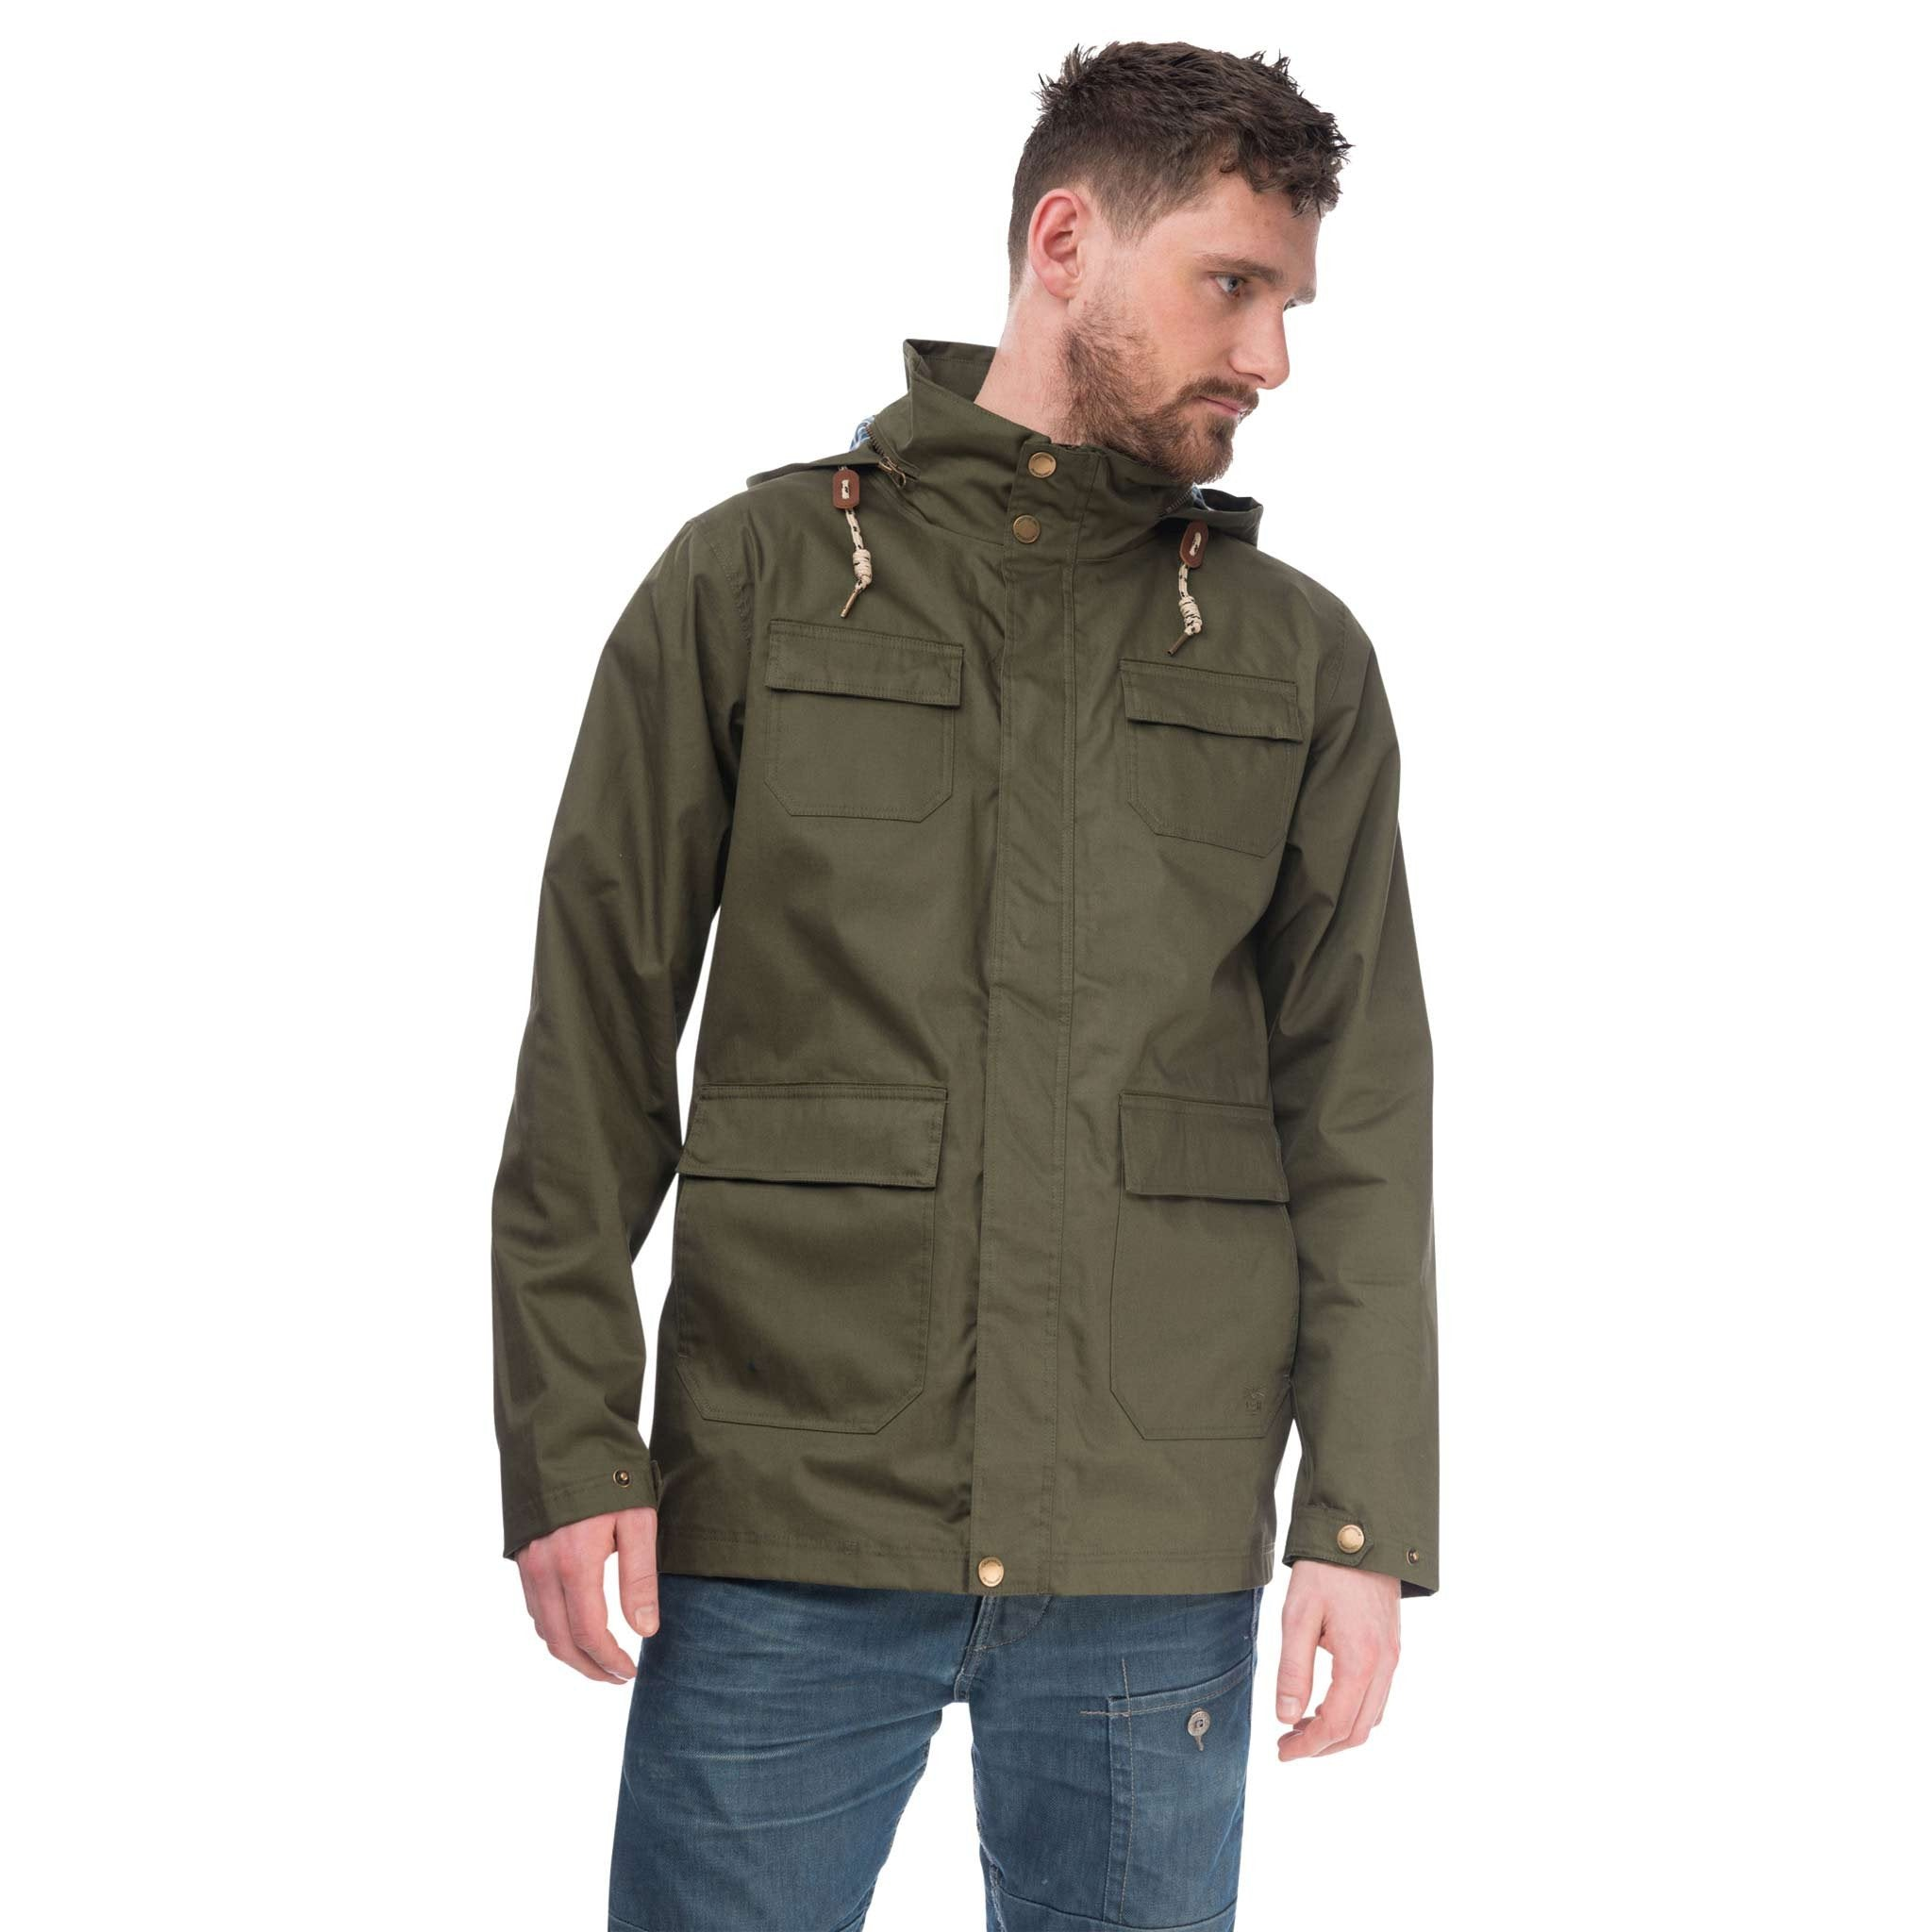 hot-selling official outlet store classcic Rigger Stylish Waterproof Coat - Olive - Mens Raincoats ...